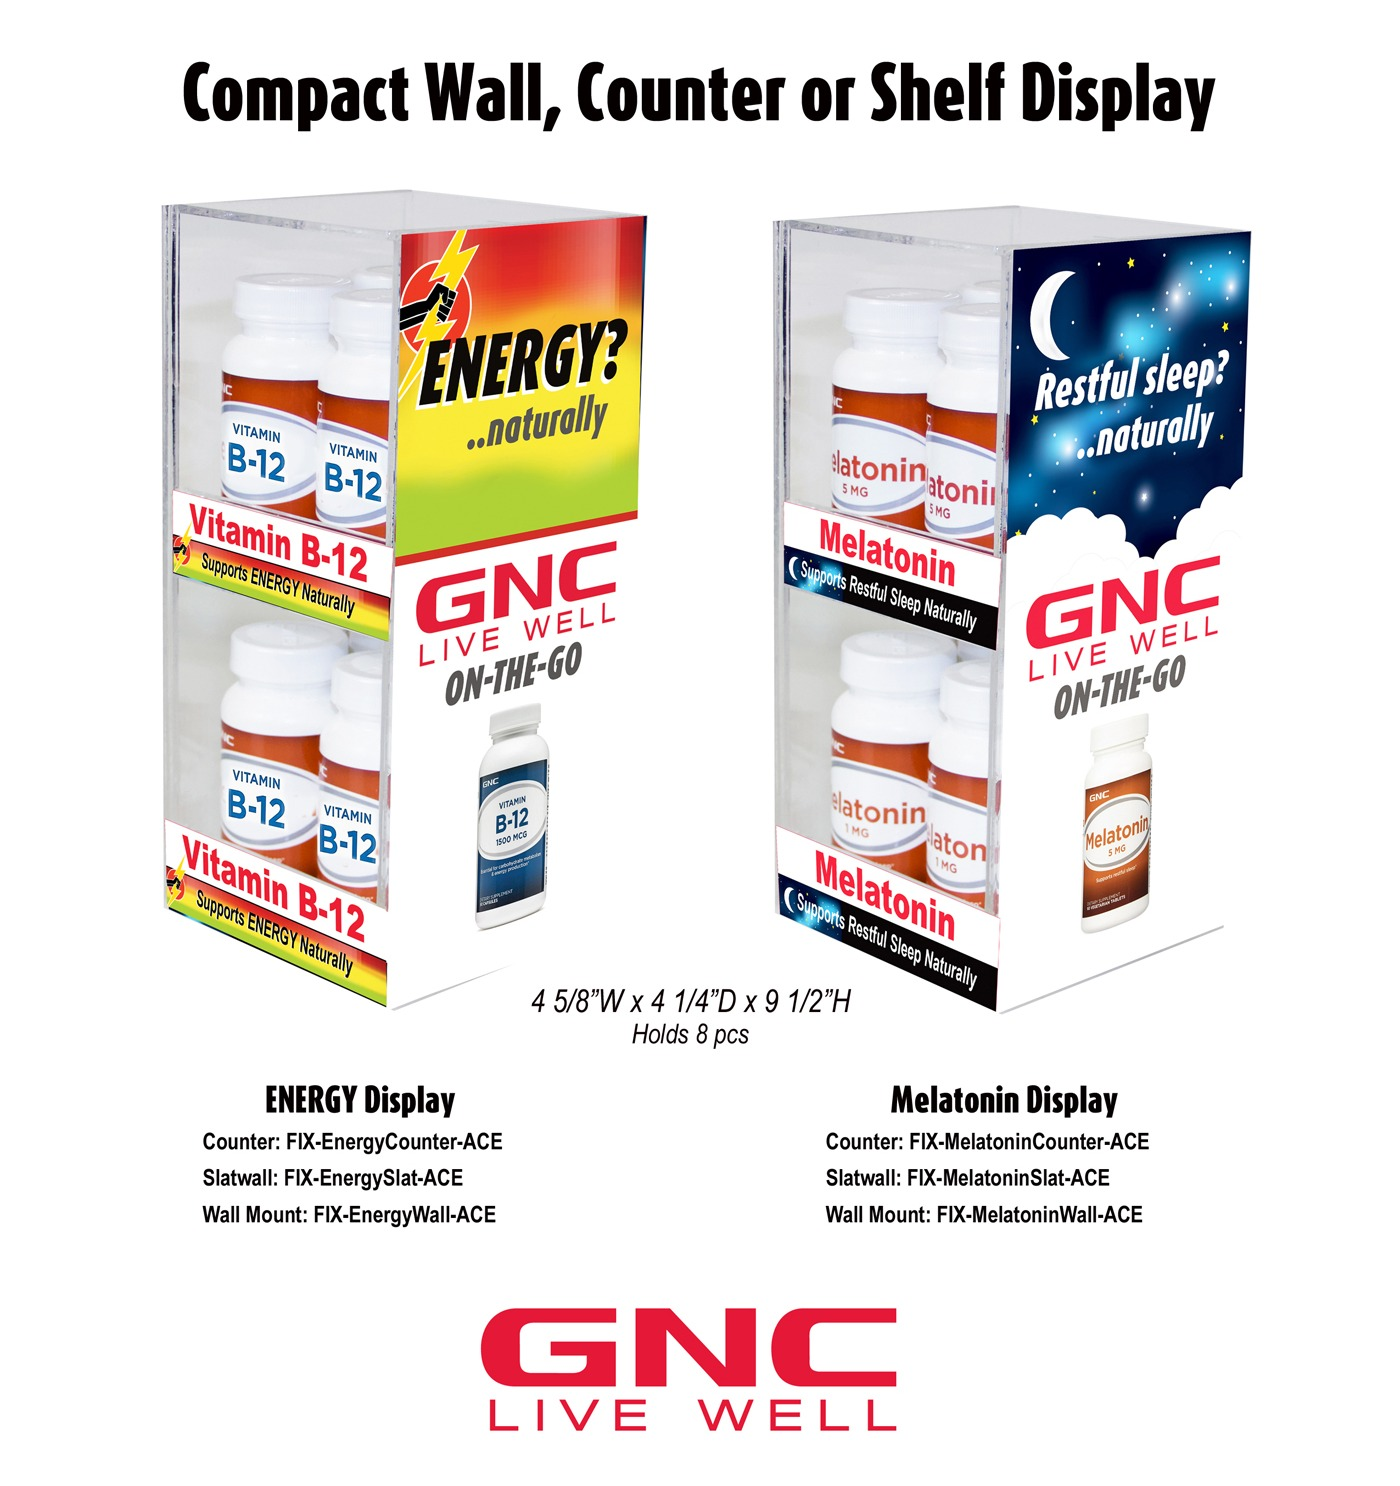 GNC Compacy Wall-Counter-Shelf Display_e